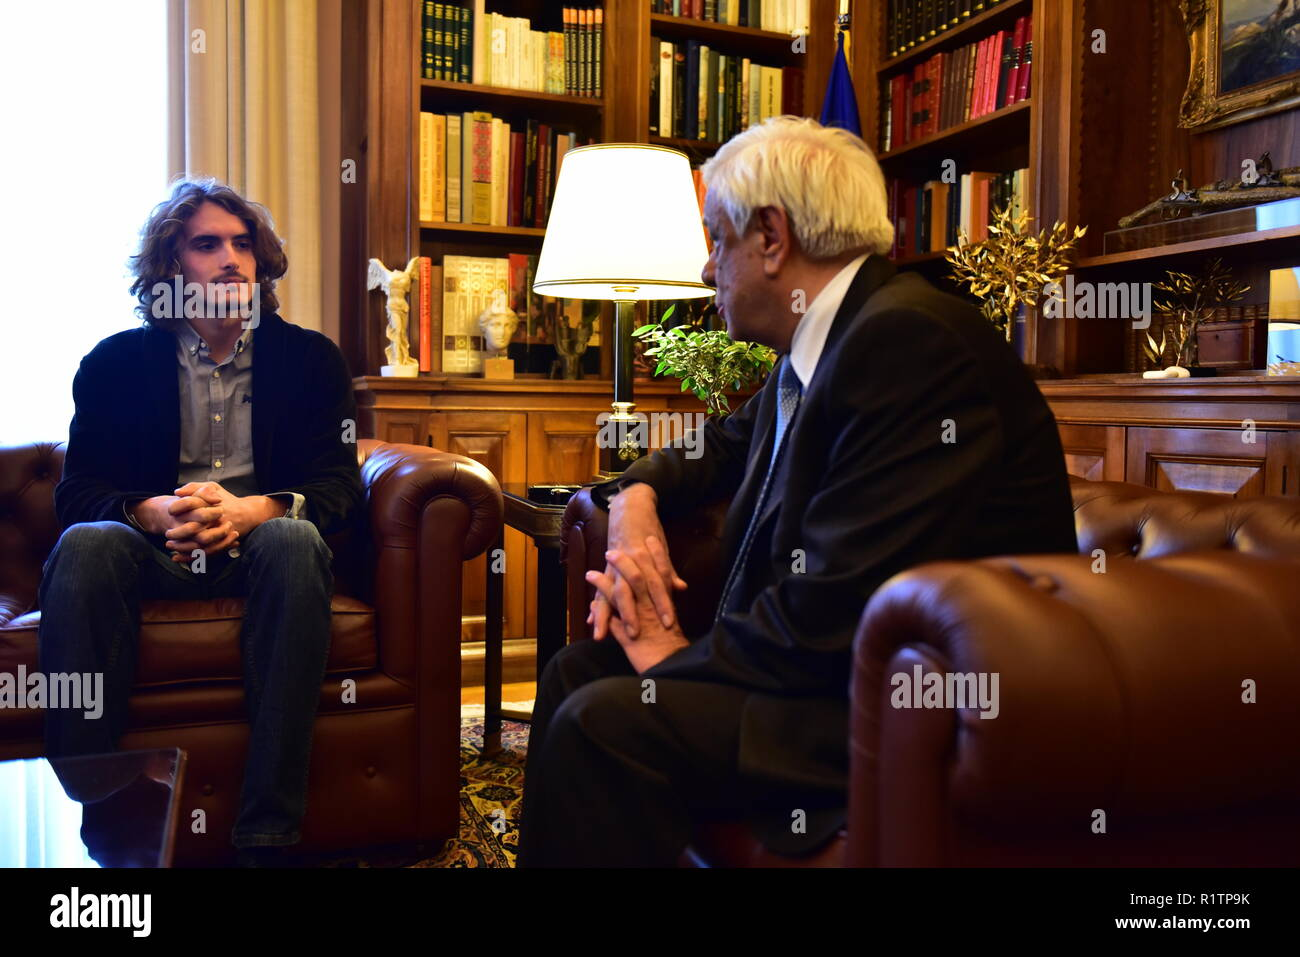 Stefanos Tsitsipas High Resolution Stock Photography And Images Alamy